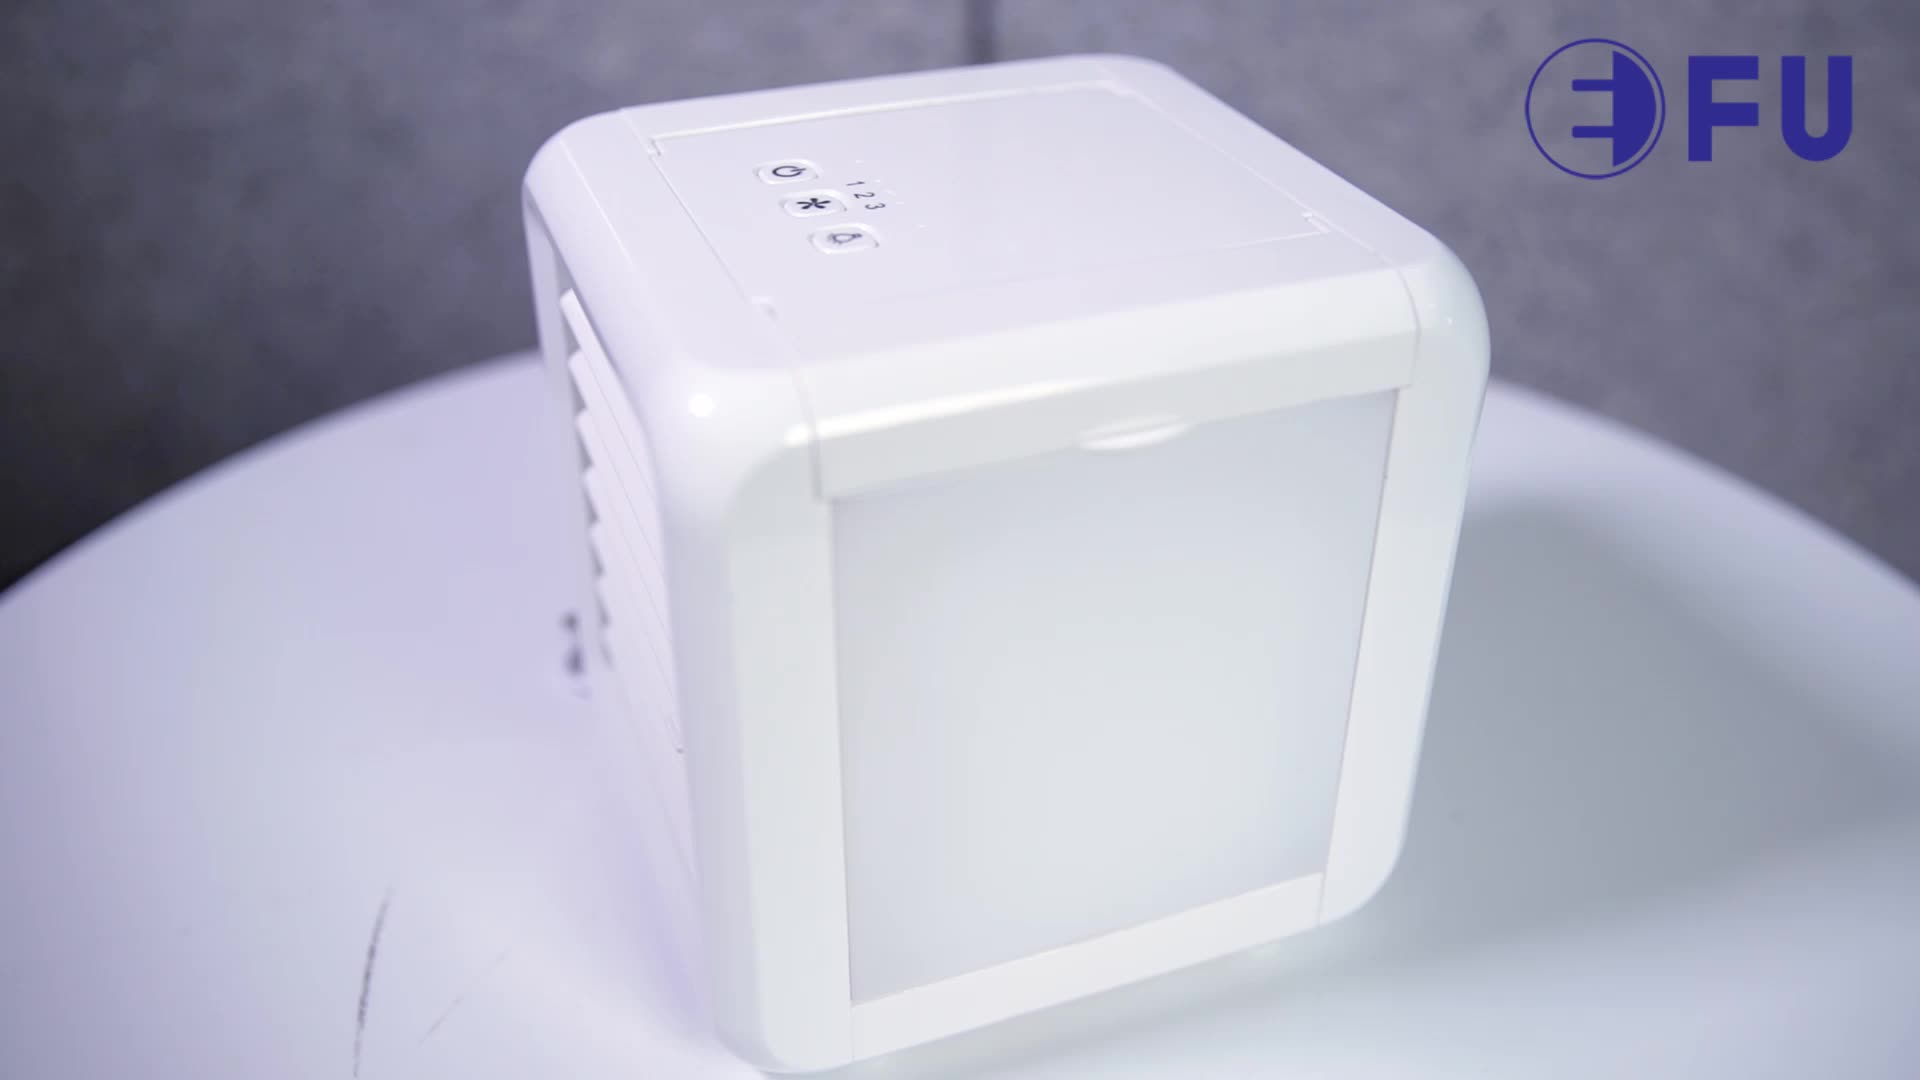 5 W แบบพกพา air conditioner ตาราง mini space cooler กับ USB power